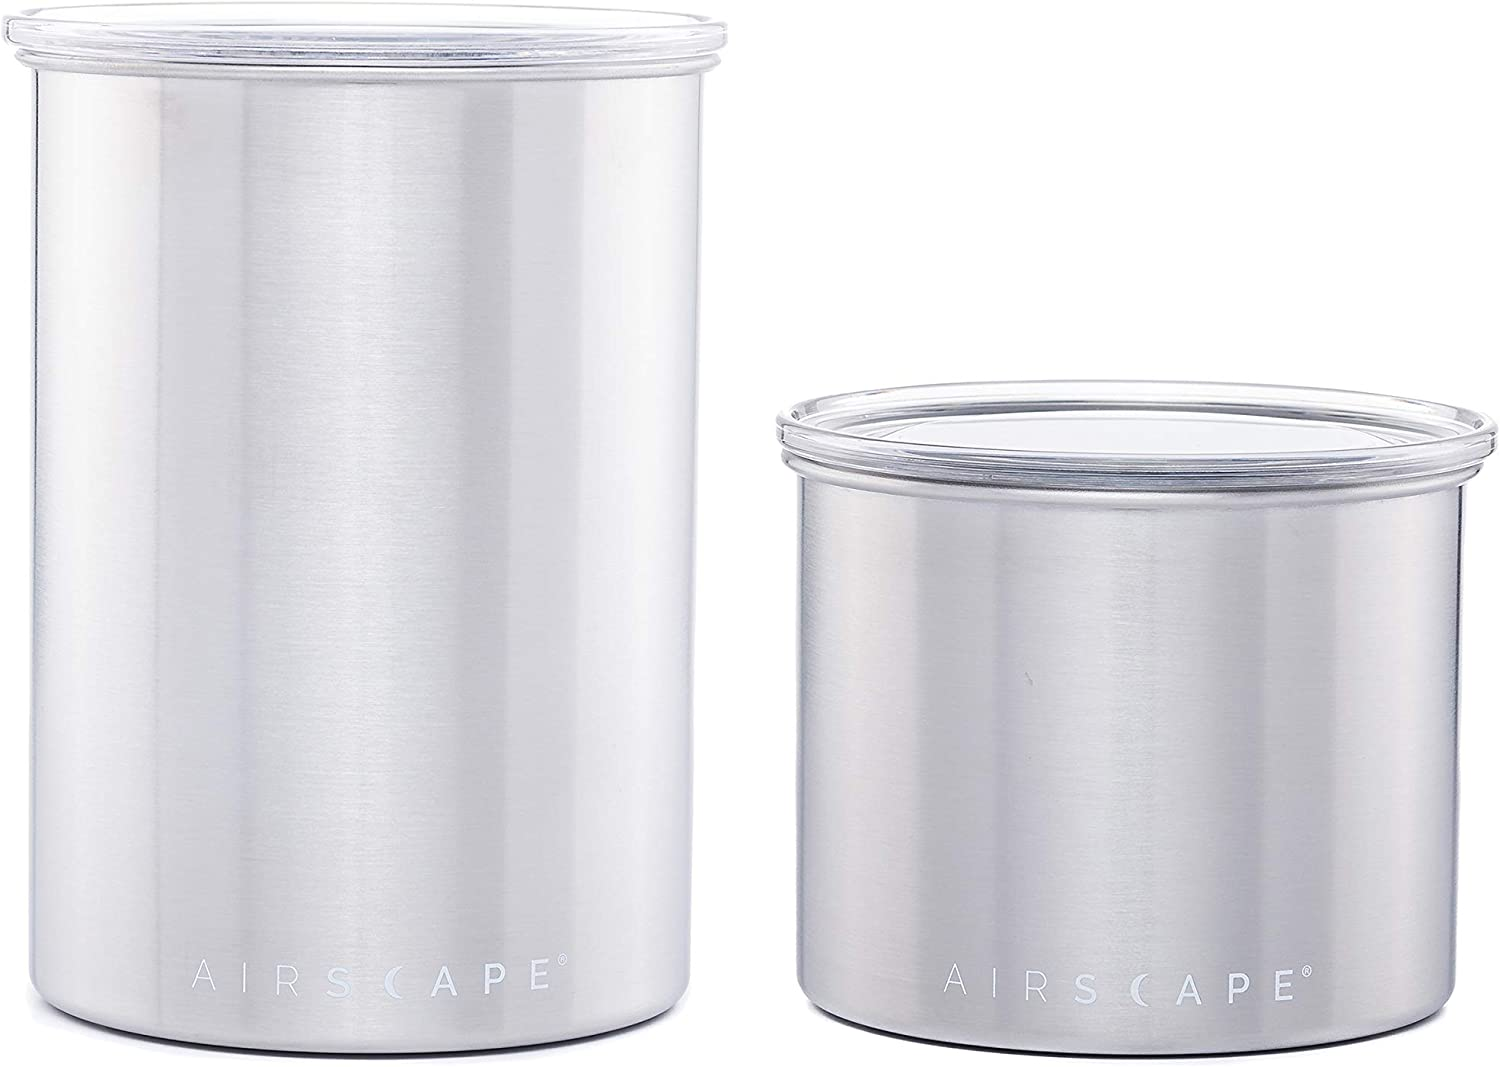 Airscape Coffee and Food Storage Canister - Patented Airtight Lid Preserve Food Freshness, Stainless Steel Food Container, Brushed Steel, 4